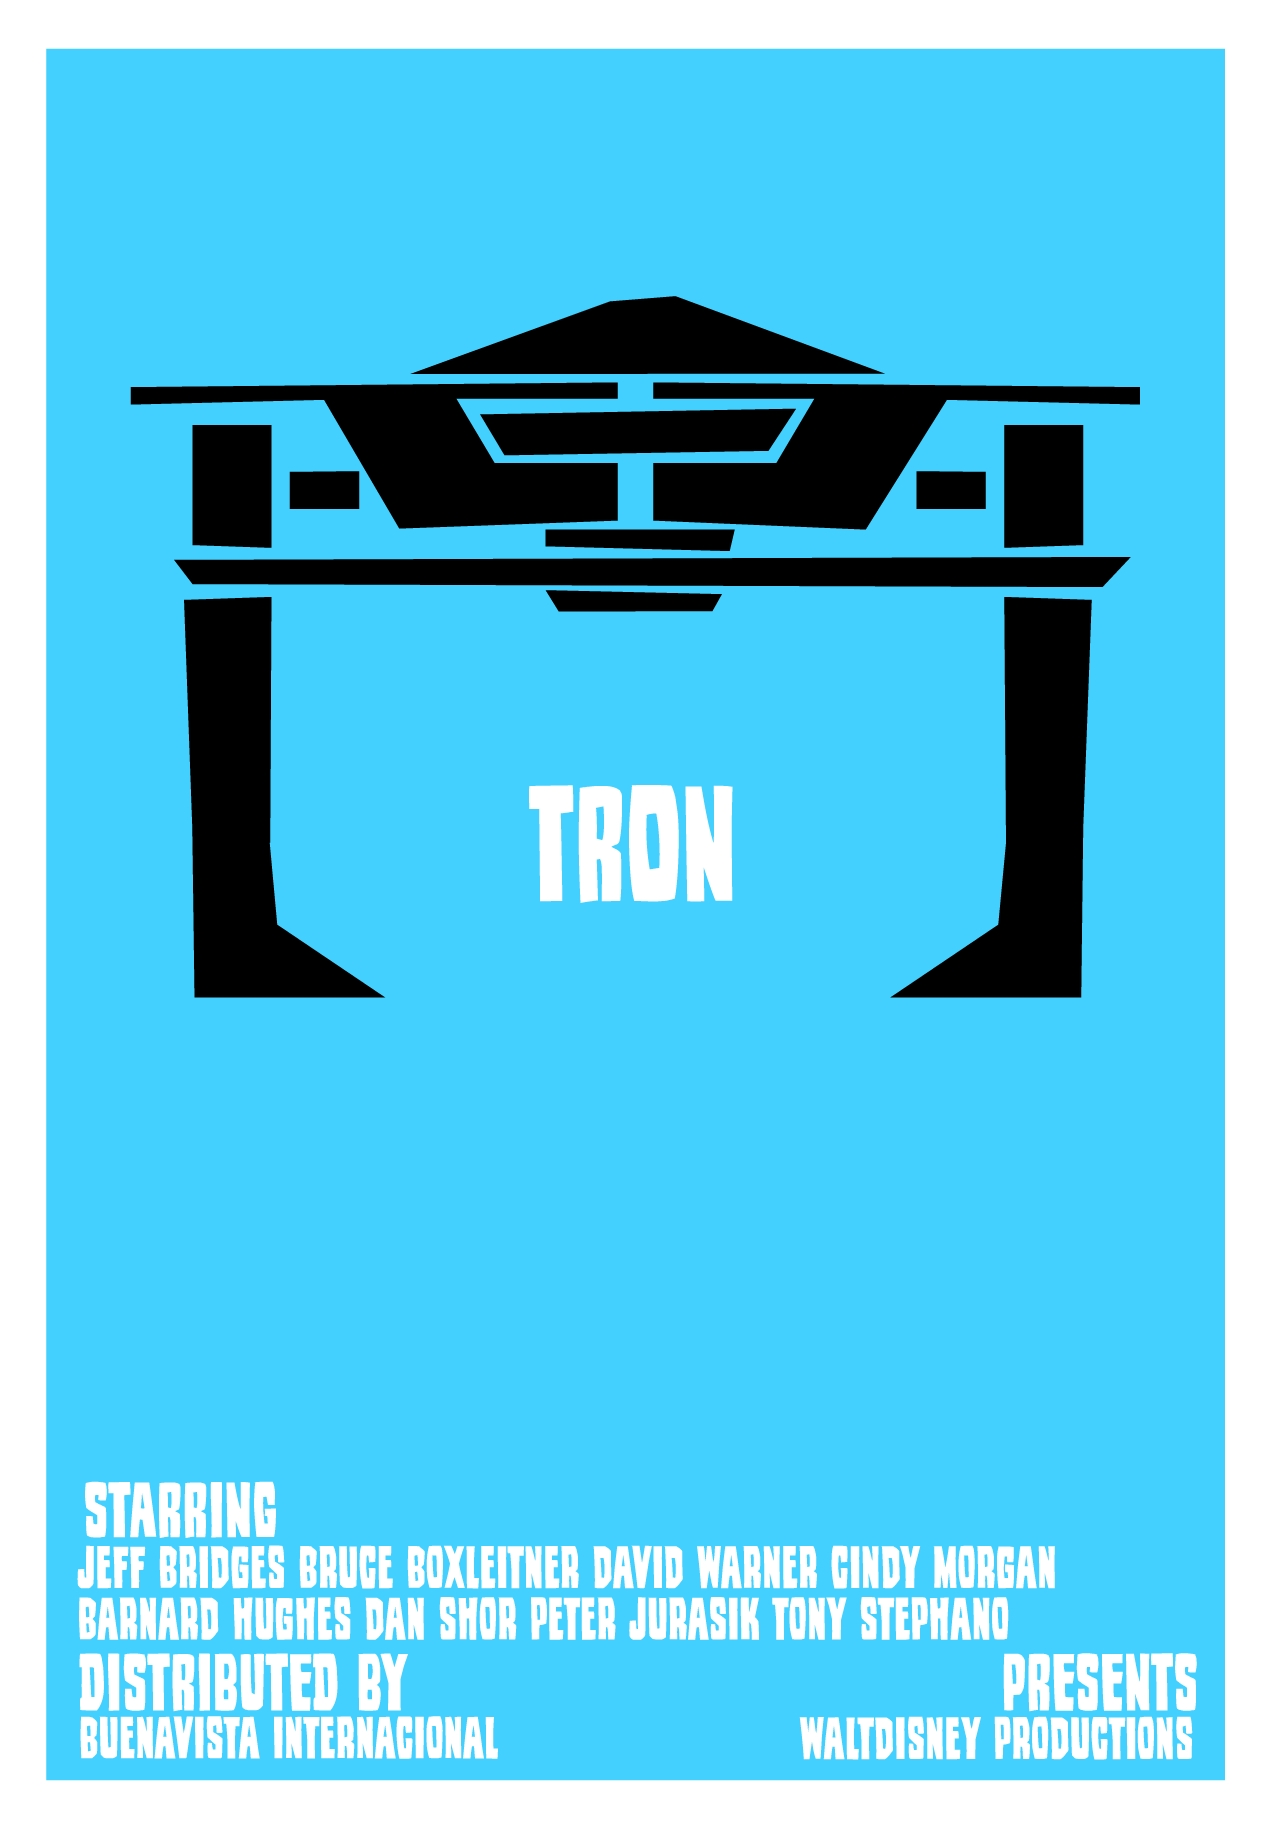 tron_posters_2020_1